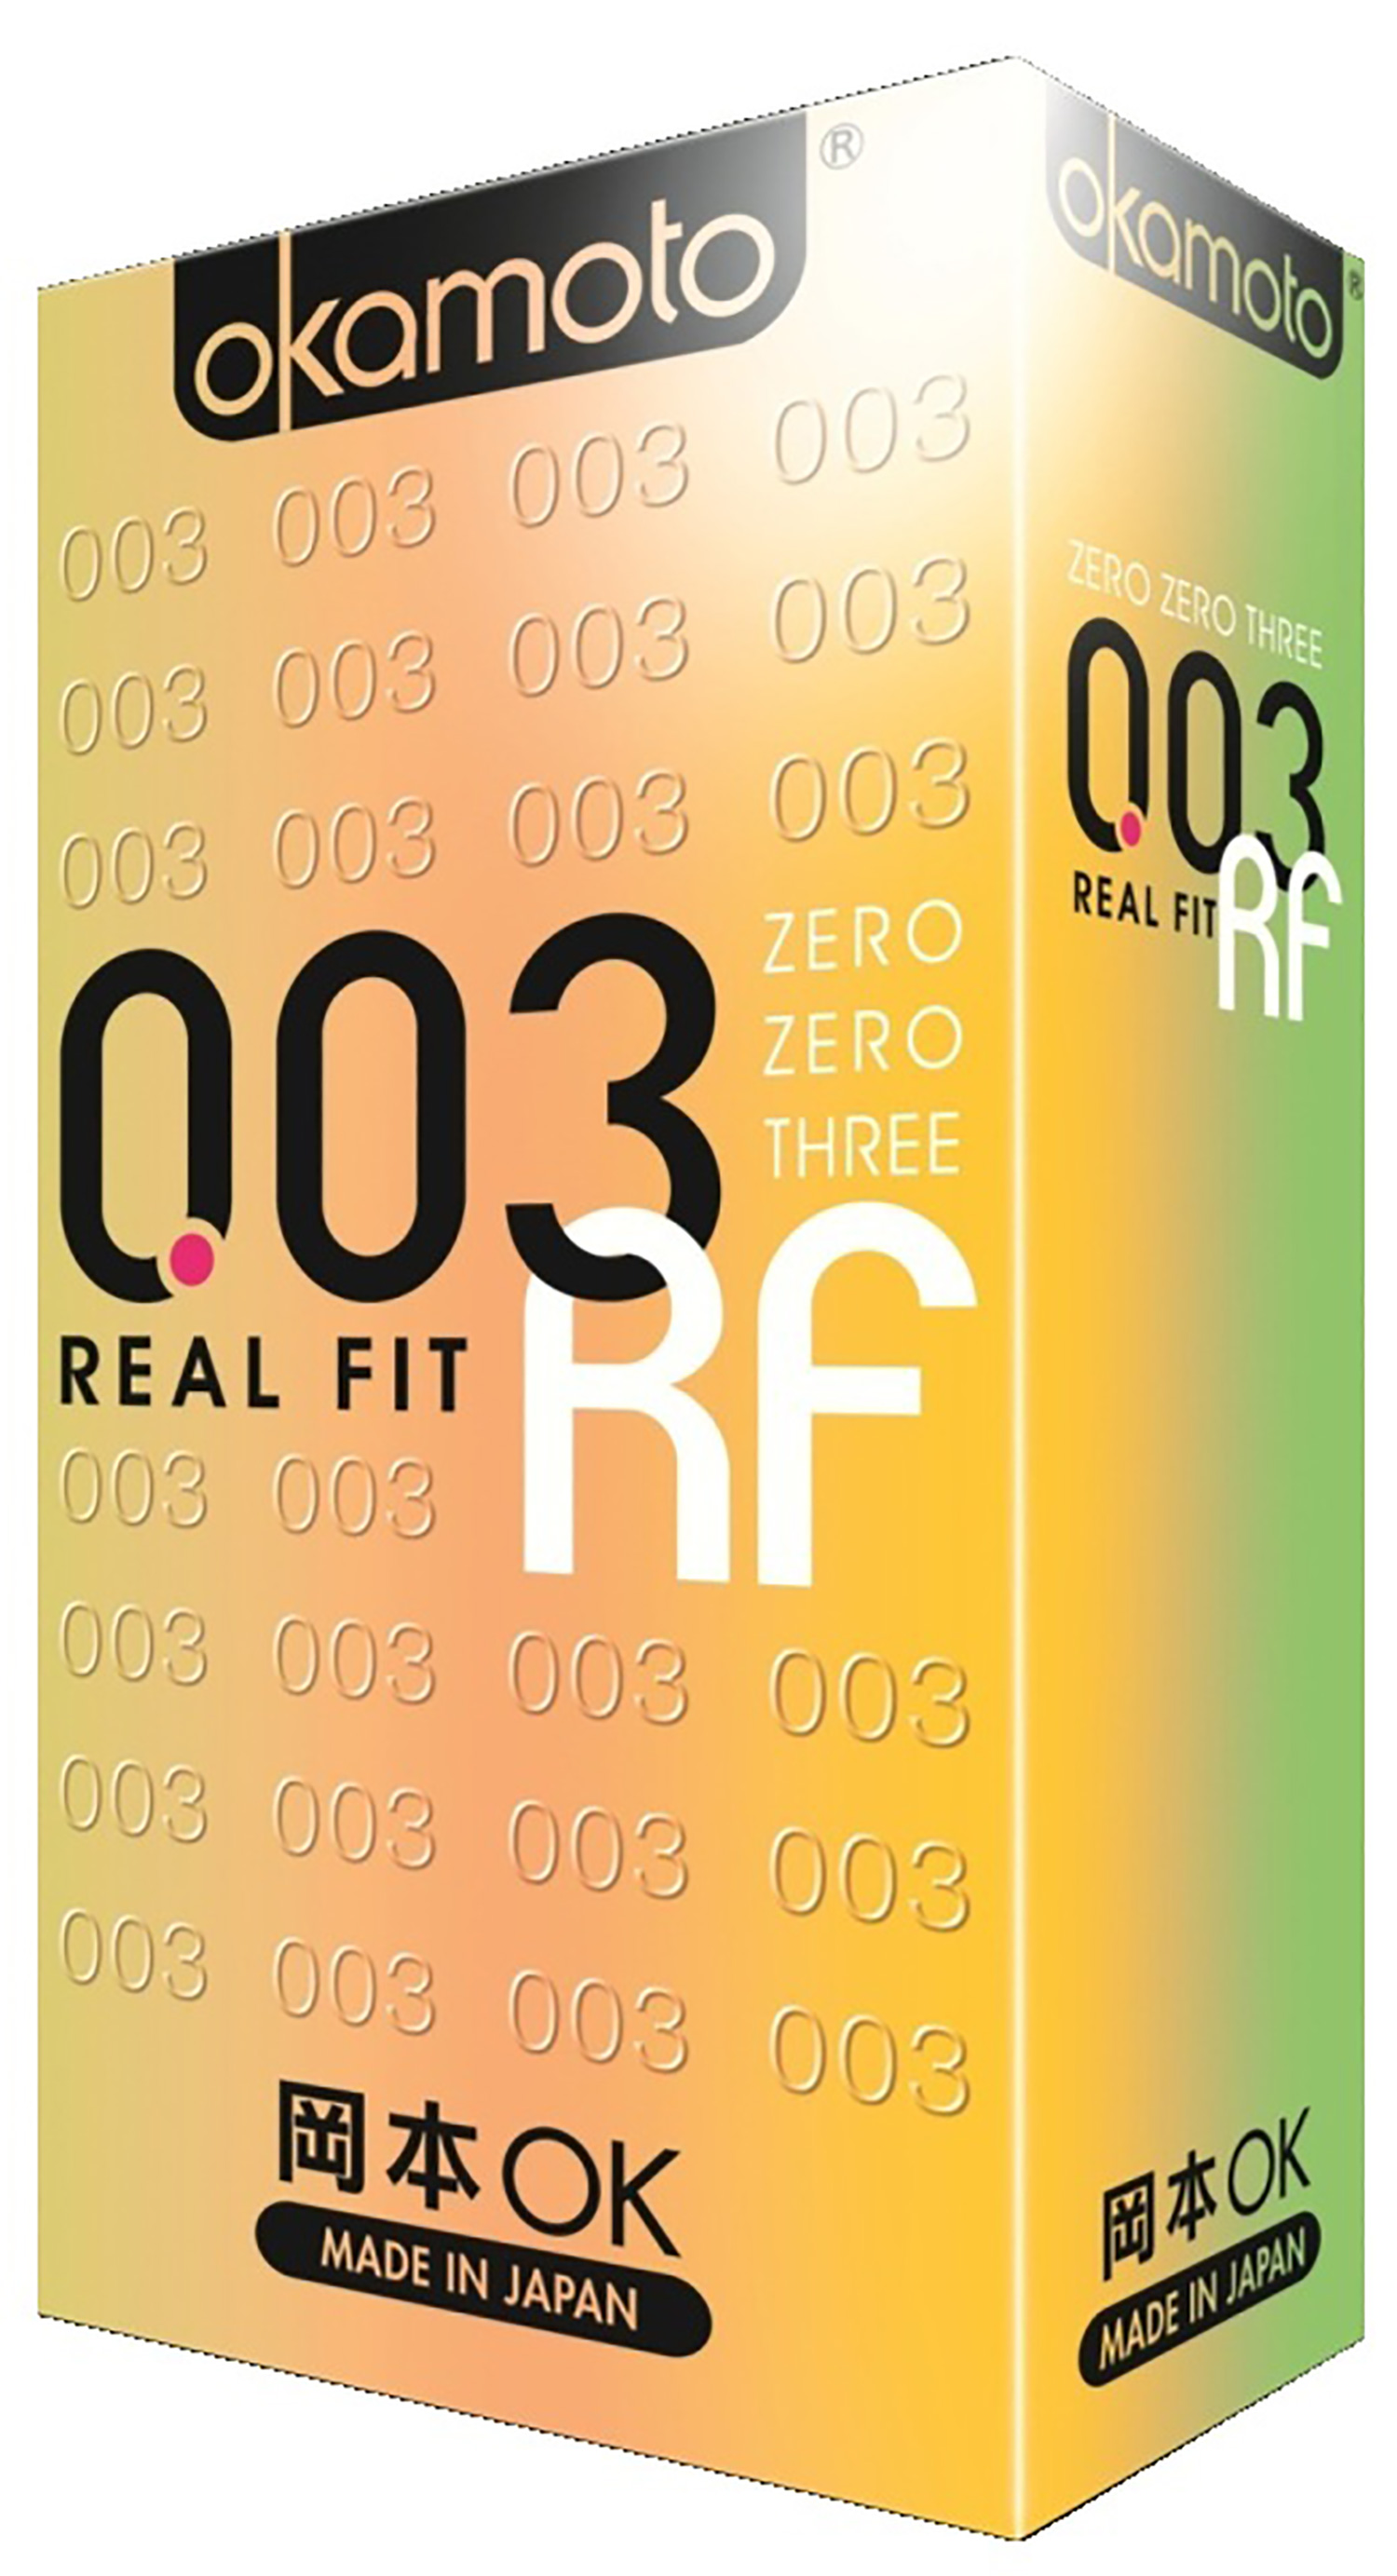 0.03REAL-FITW